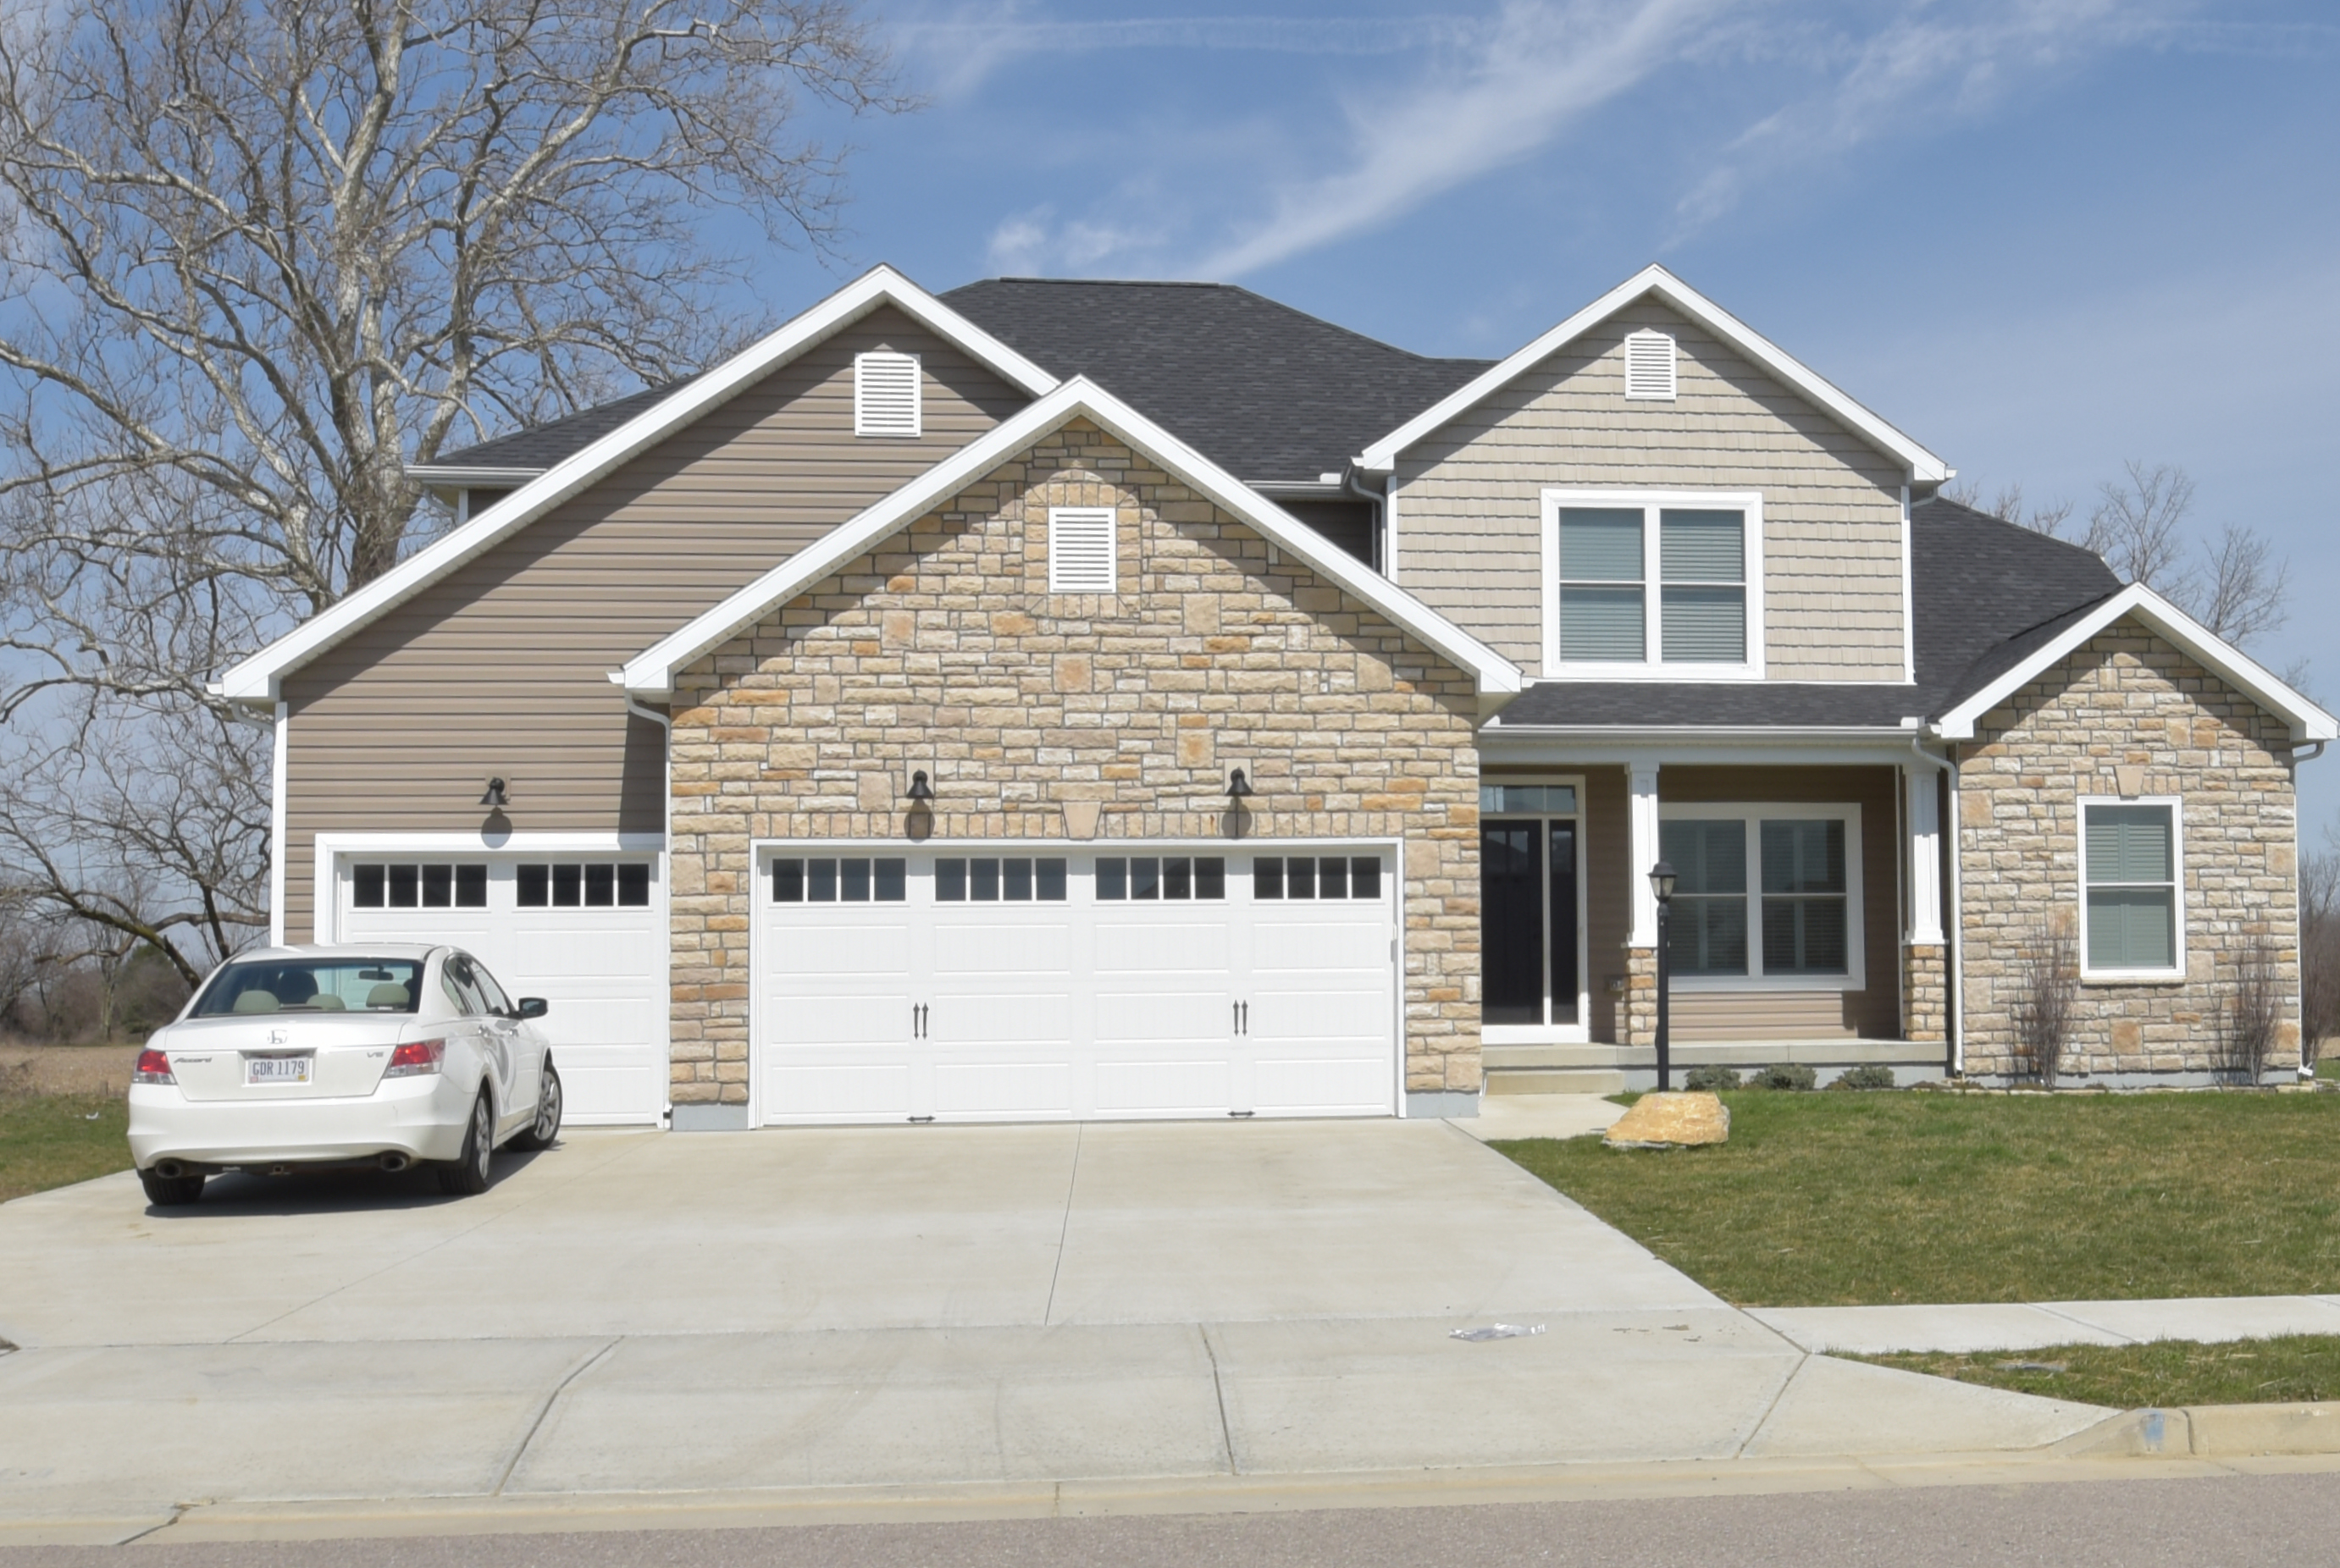 2 story Belmont model with stone, vinyl siding and shakes